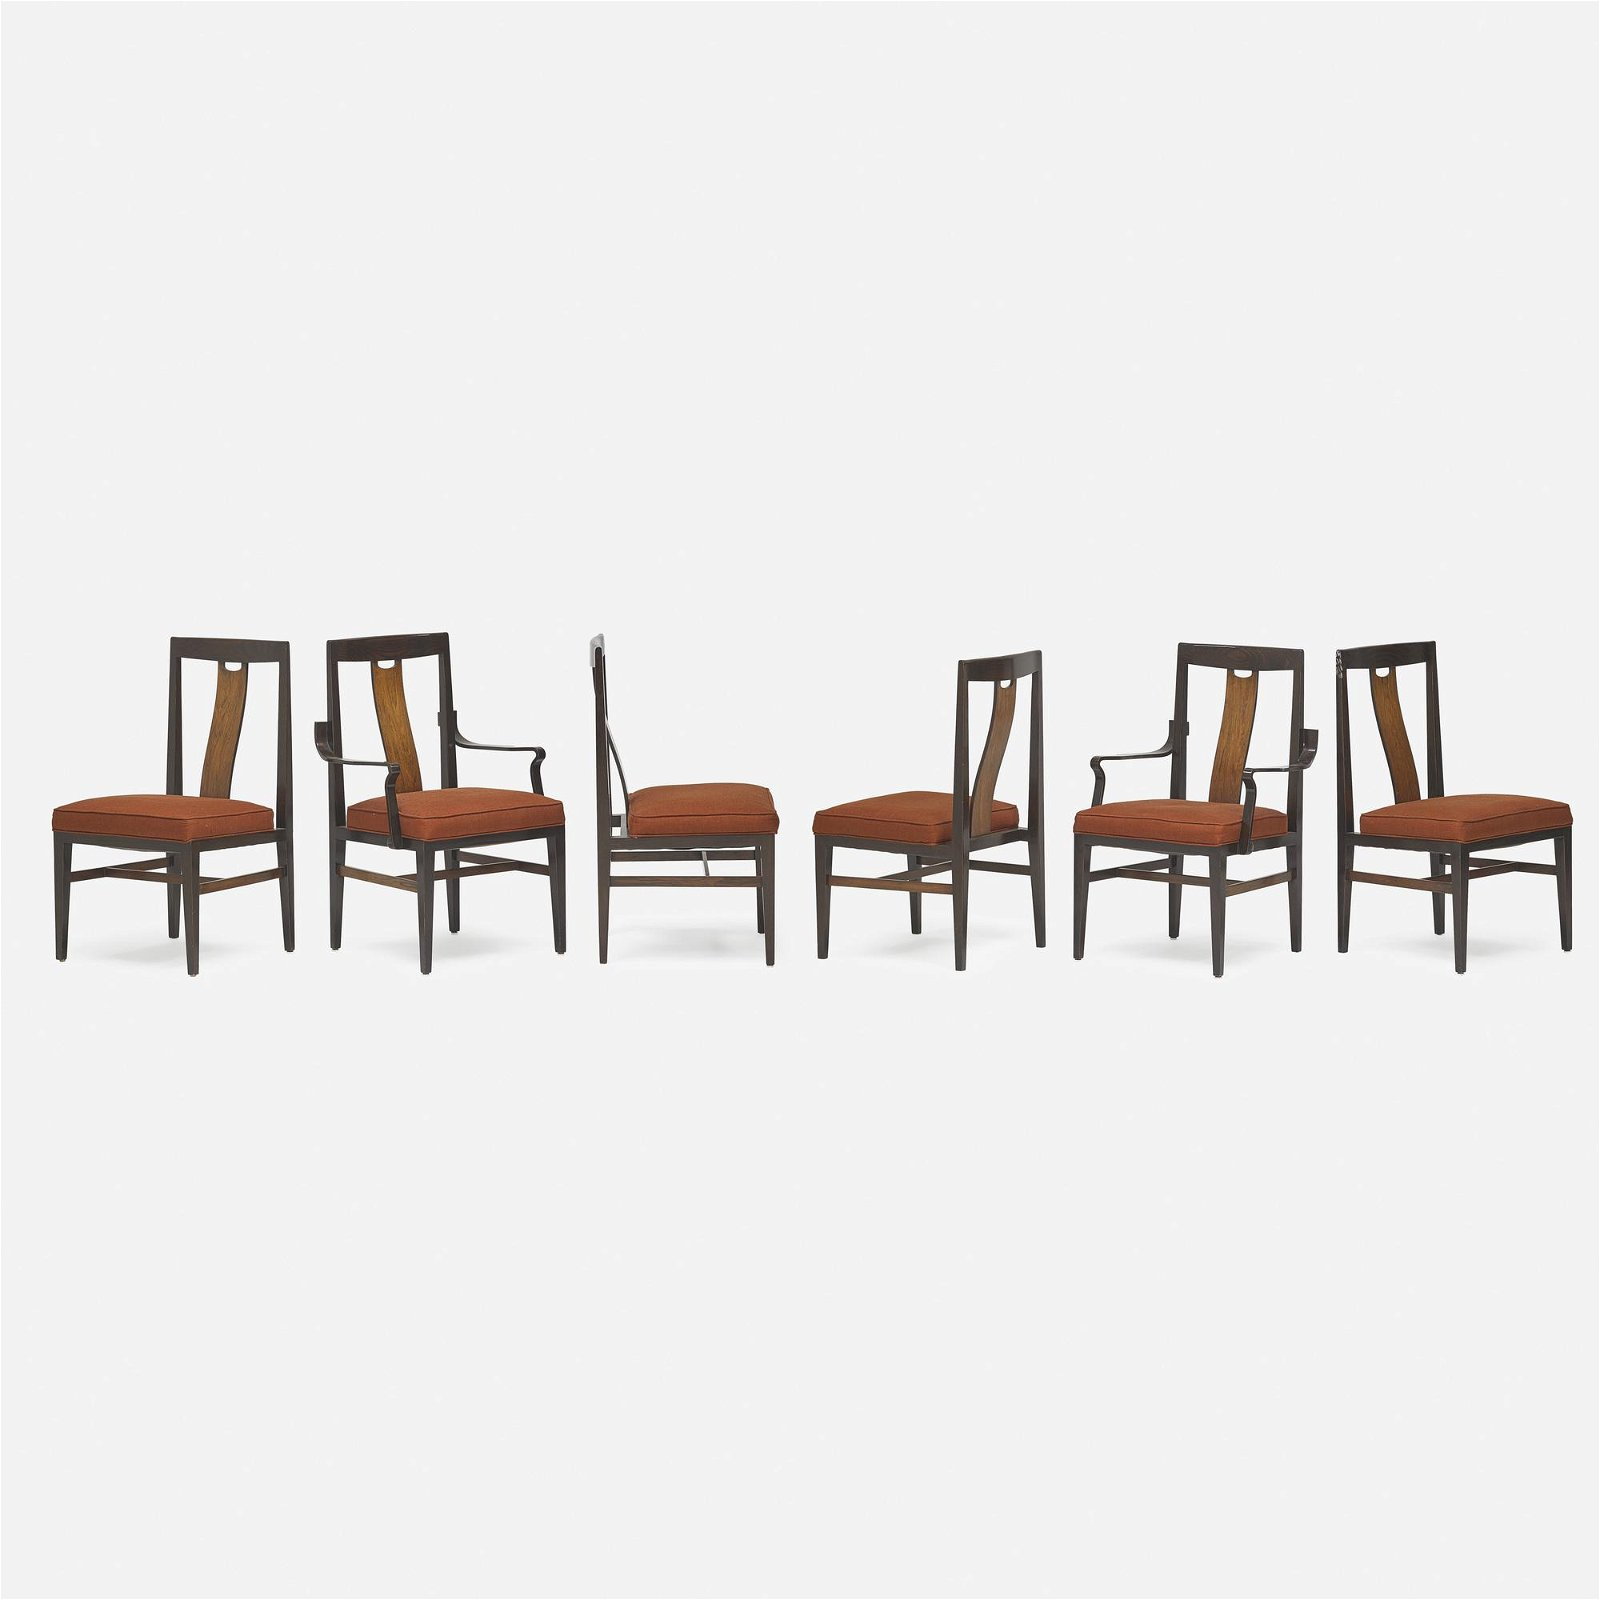 In the manner of Edward Wormley, dining chairs